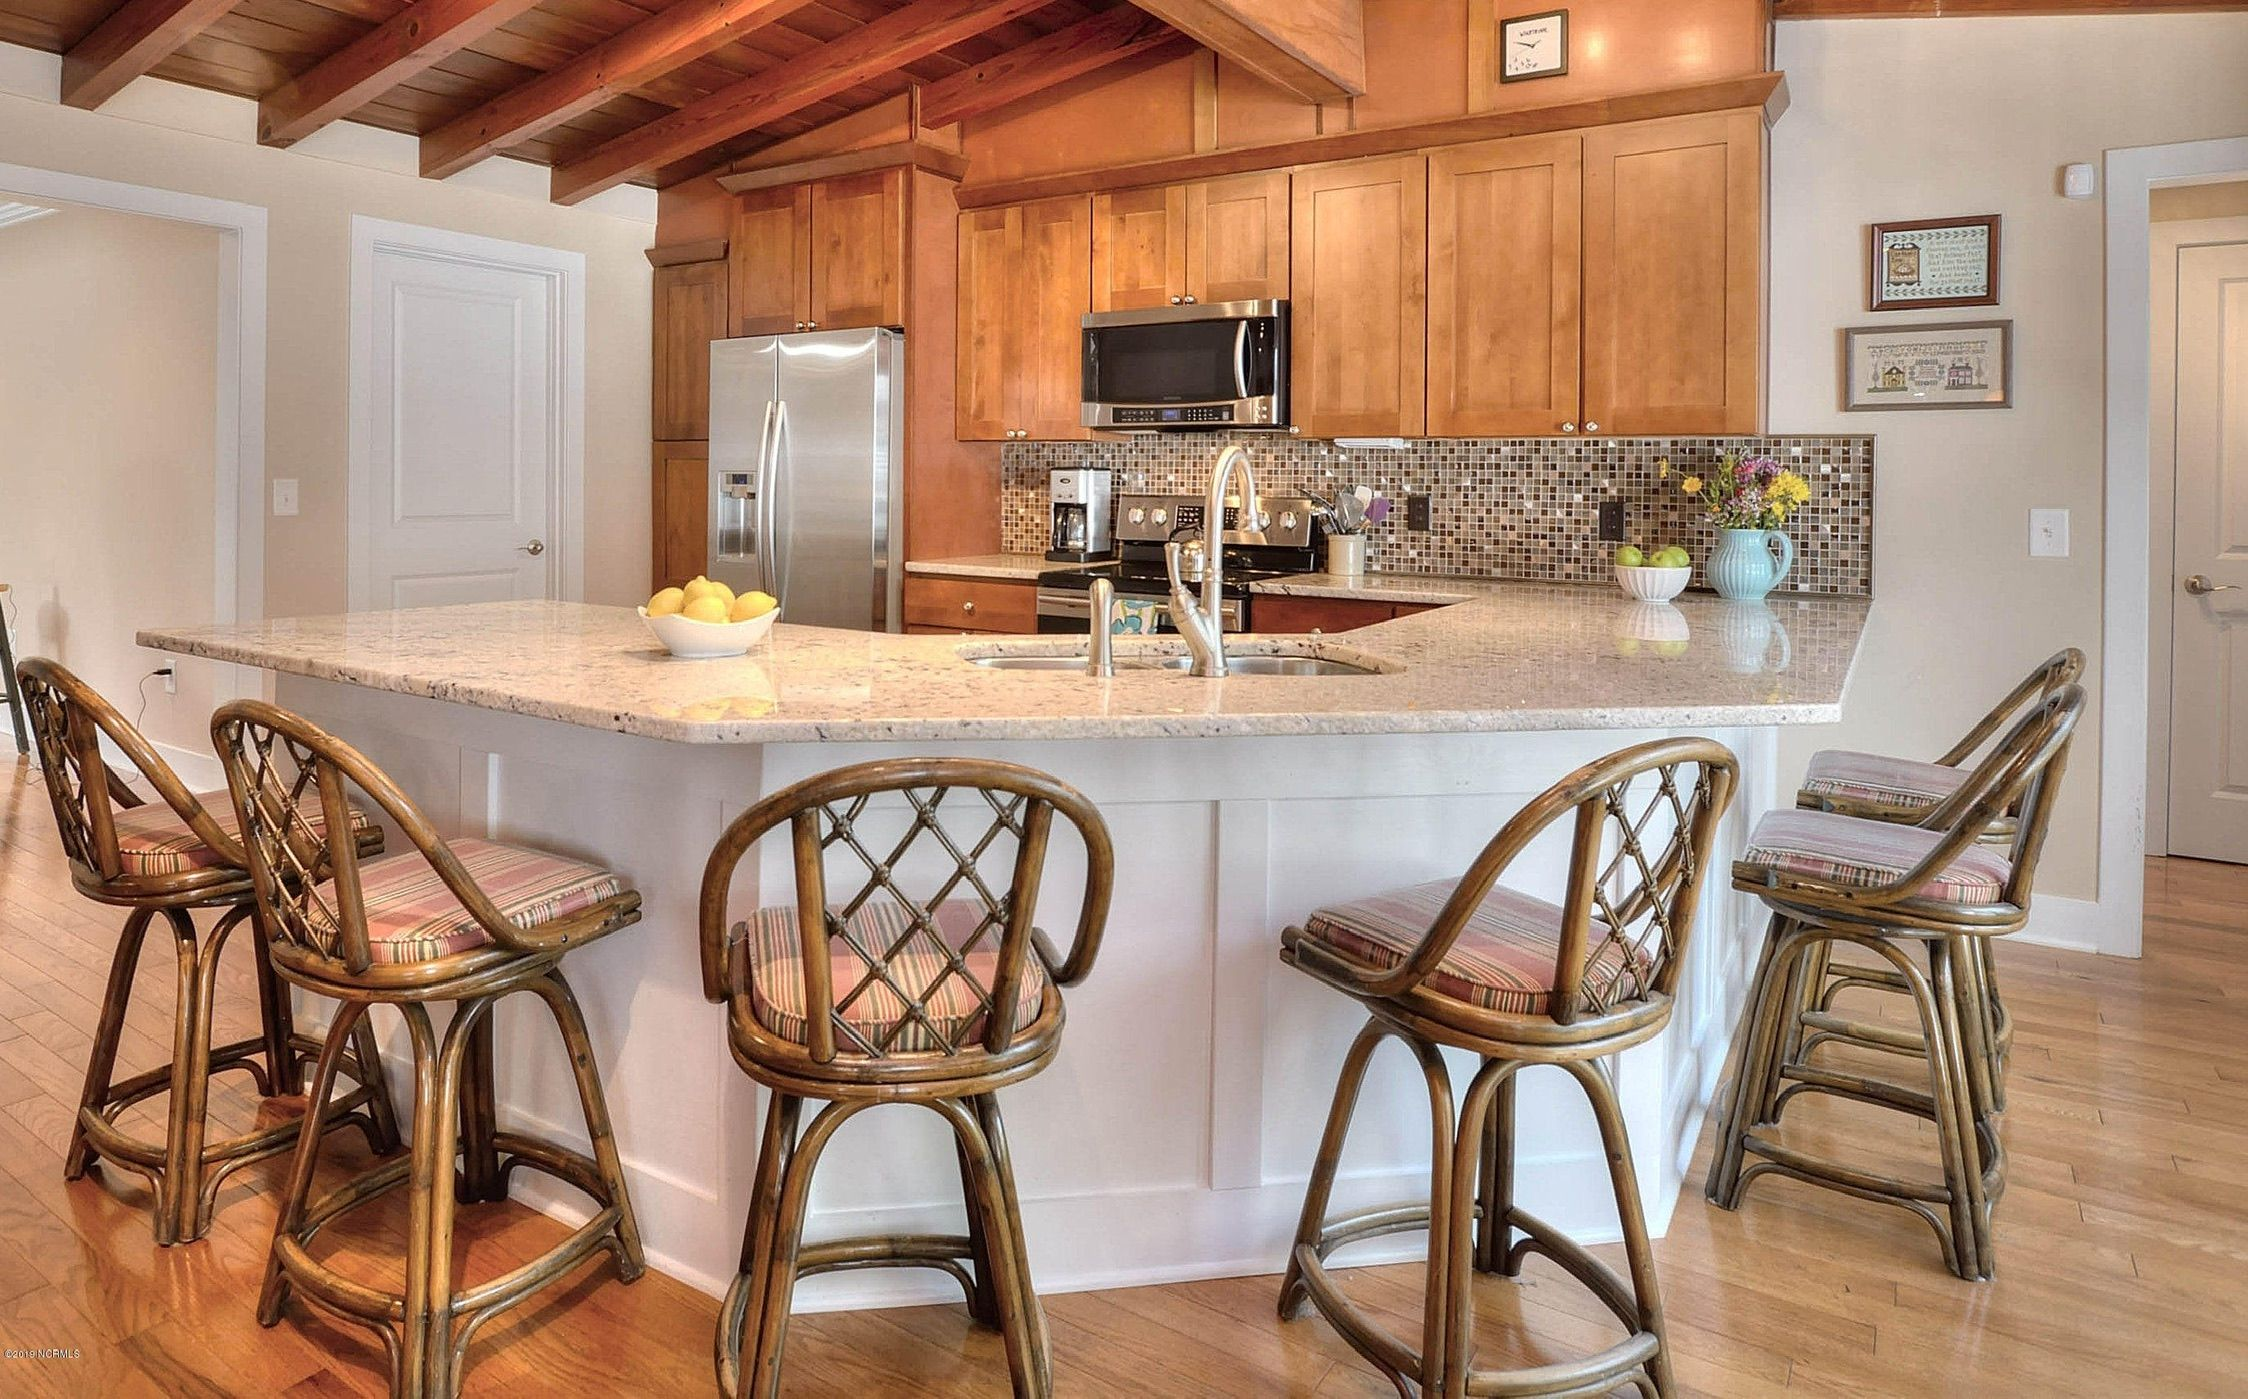 Image by barbara vicare on angled kitchen islands north